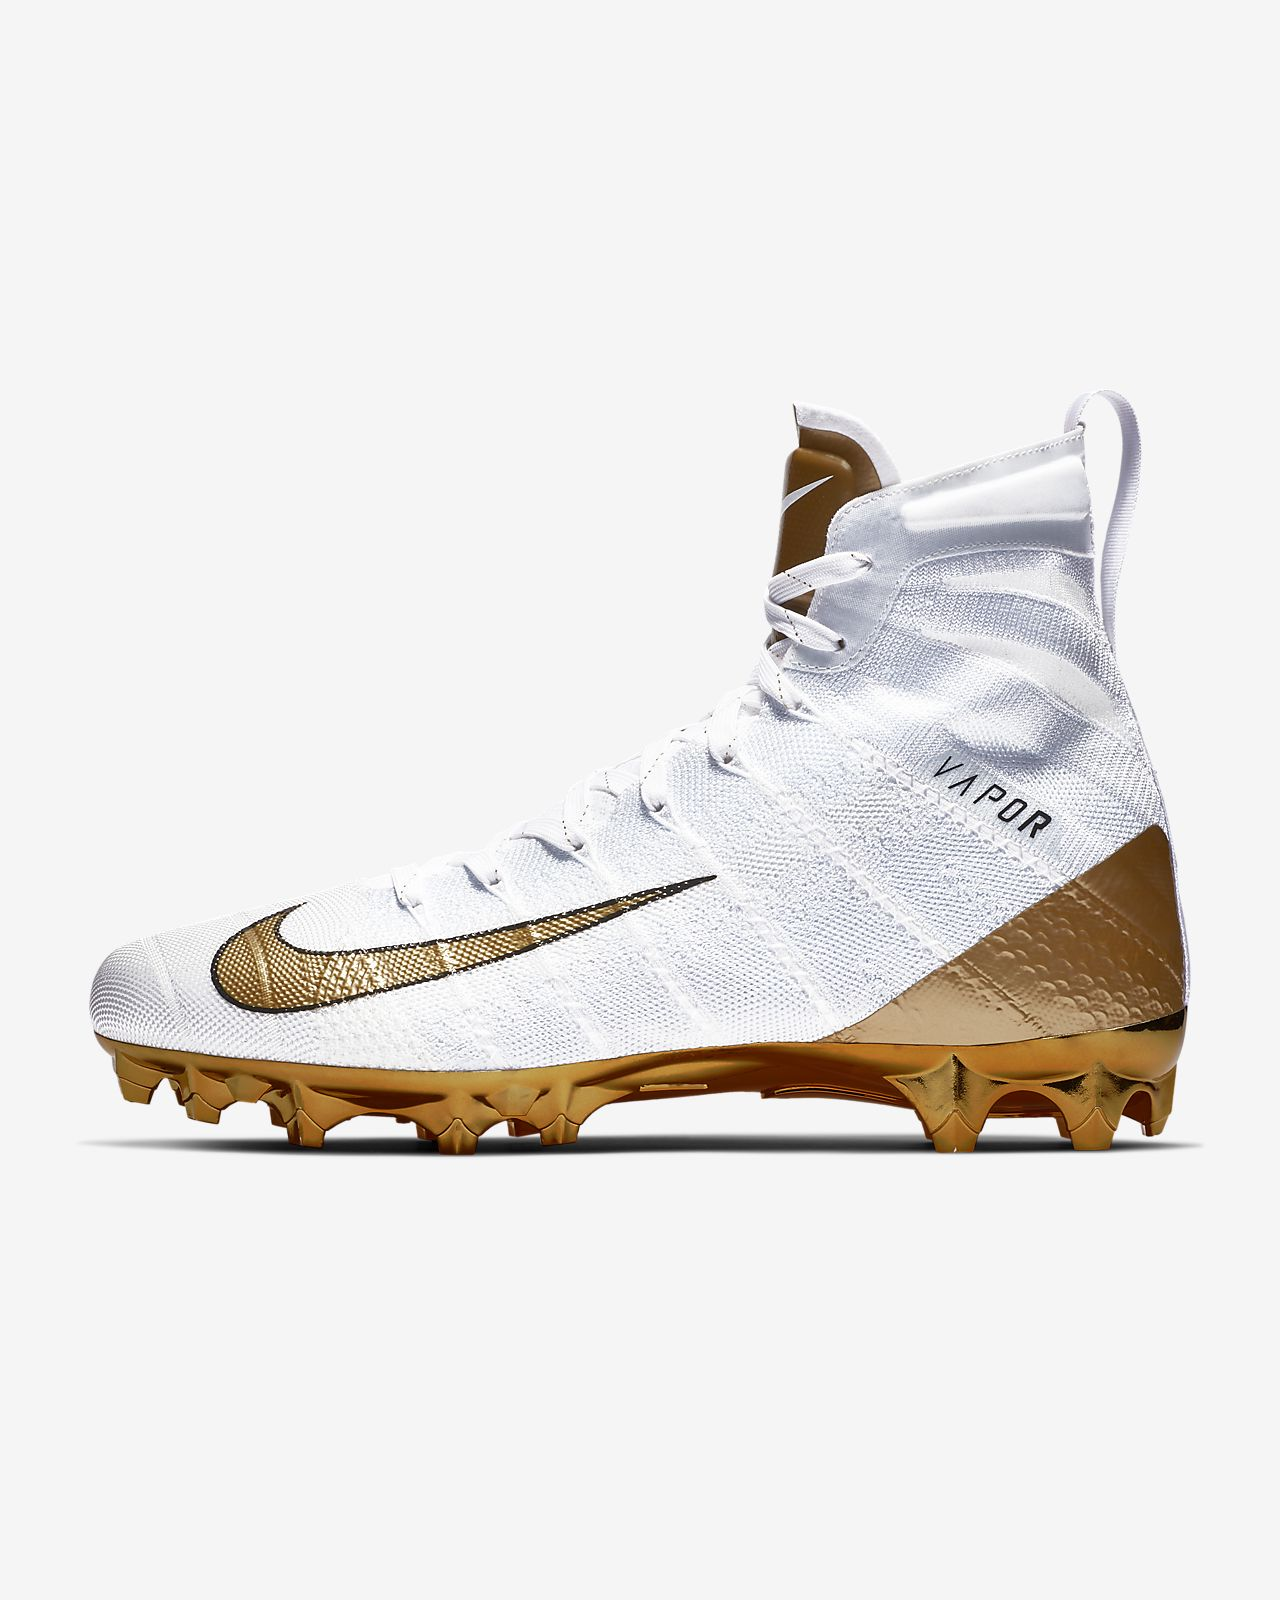 sports shoes b62ec 8be4a ... Nike Vapor Untouchable 3 Elite Football Cleat